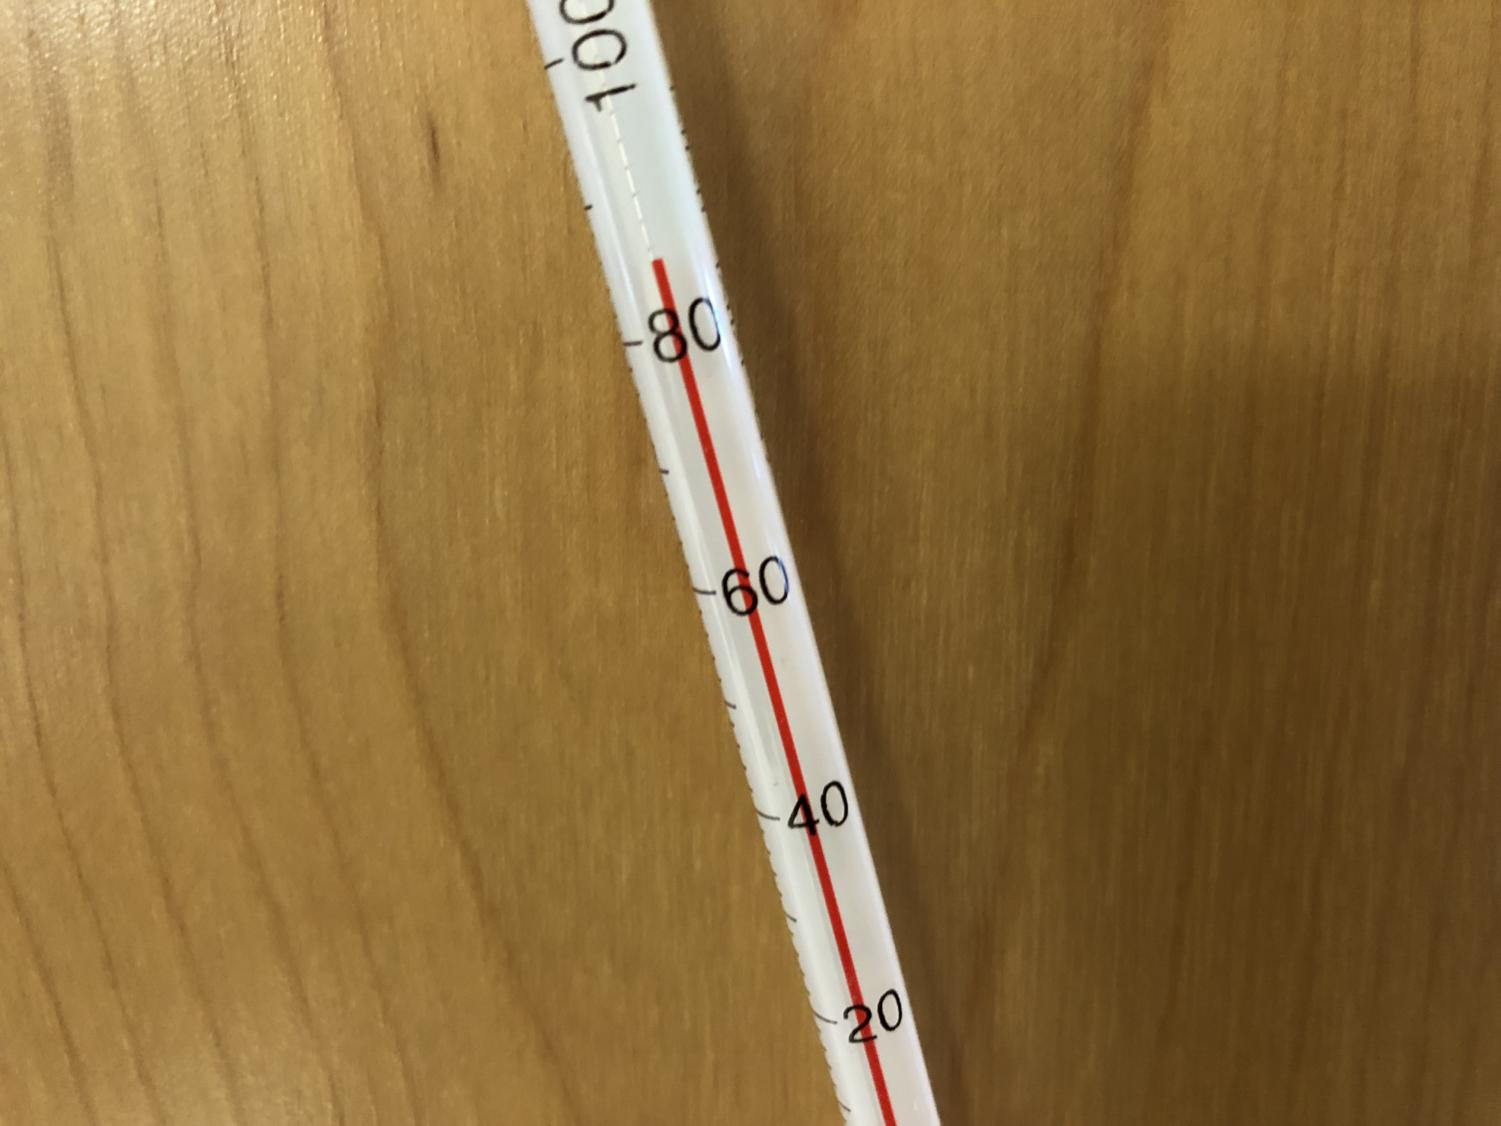 A thermometer from the one of the chemistry classrooms on the second floor showed the temperature in the mid-80s.